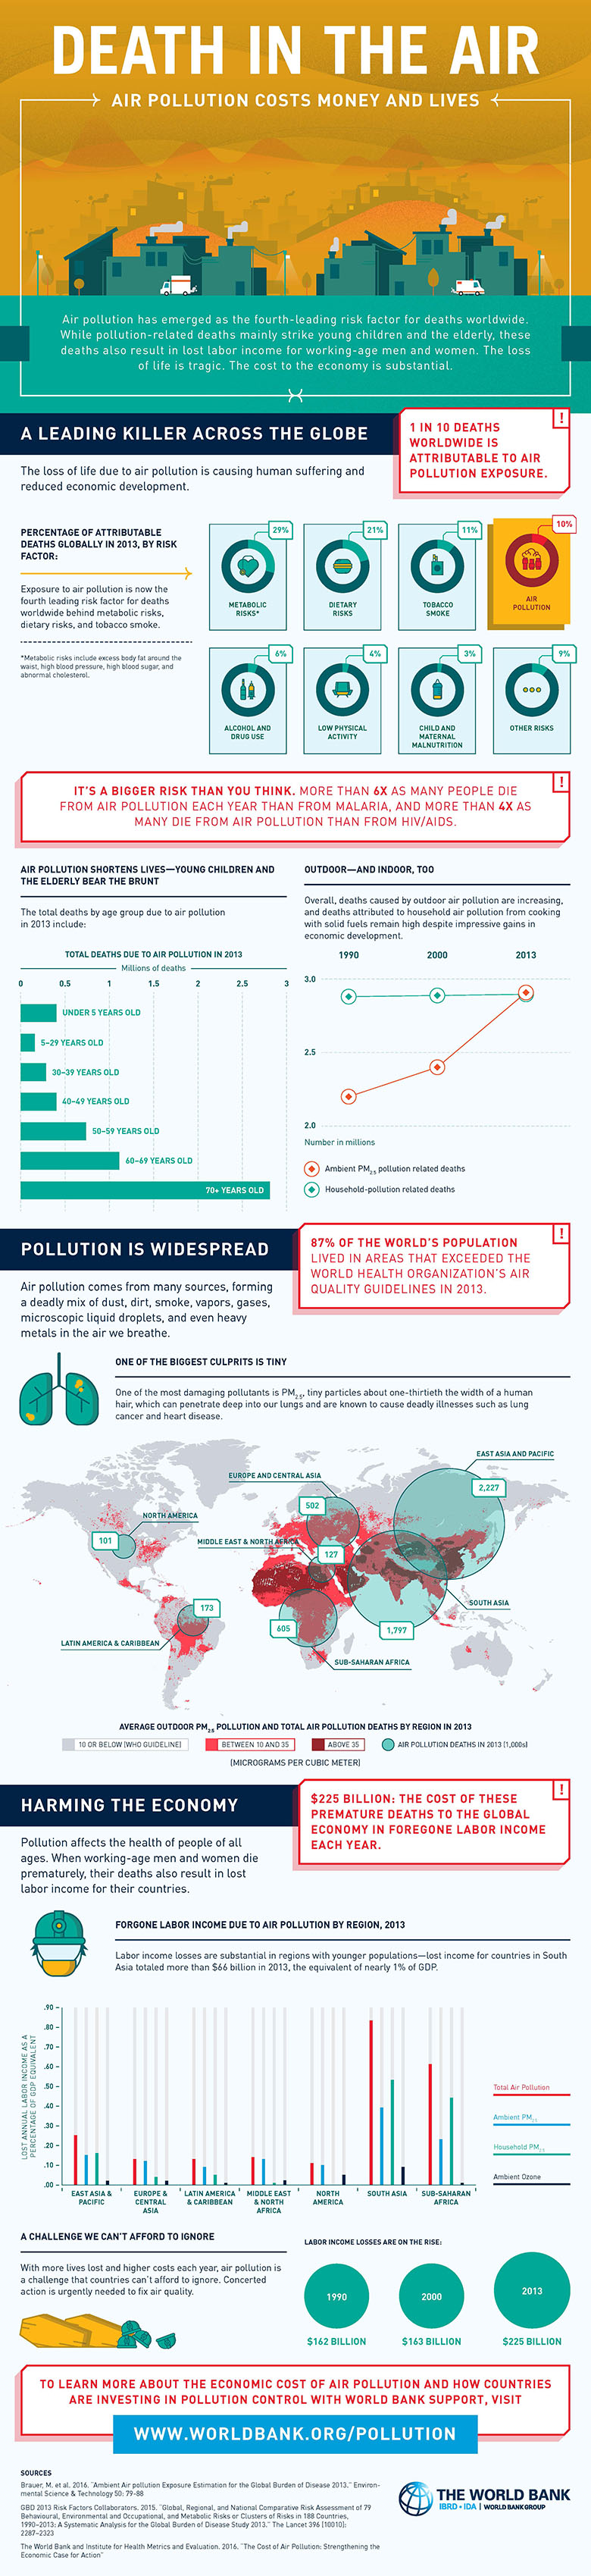 How Air Pollution Sounds the Death Knell for Lives and Money - Infographic